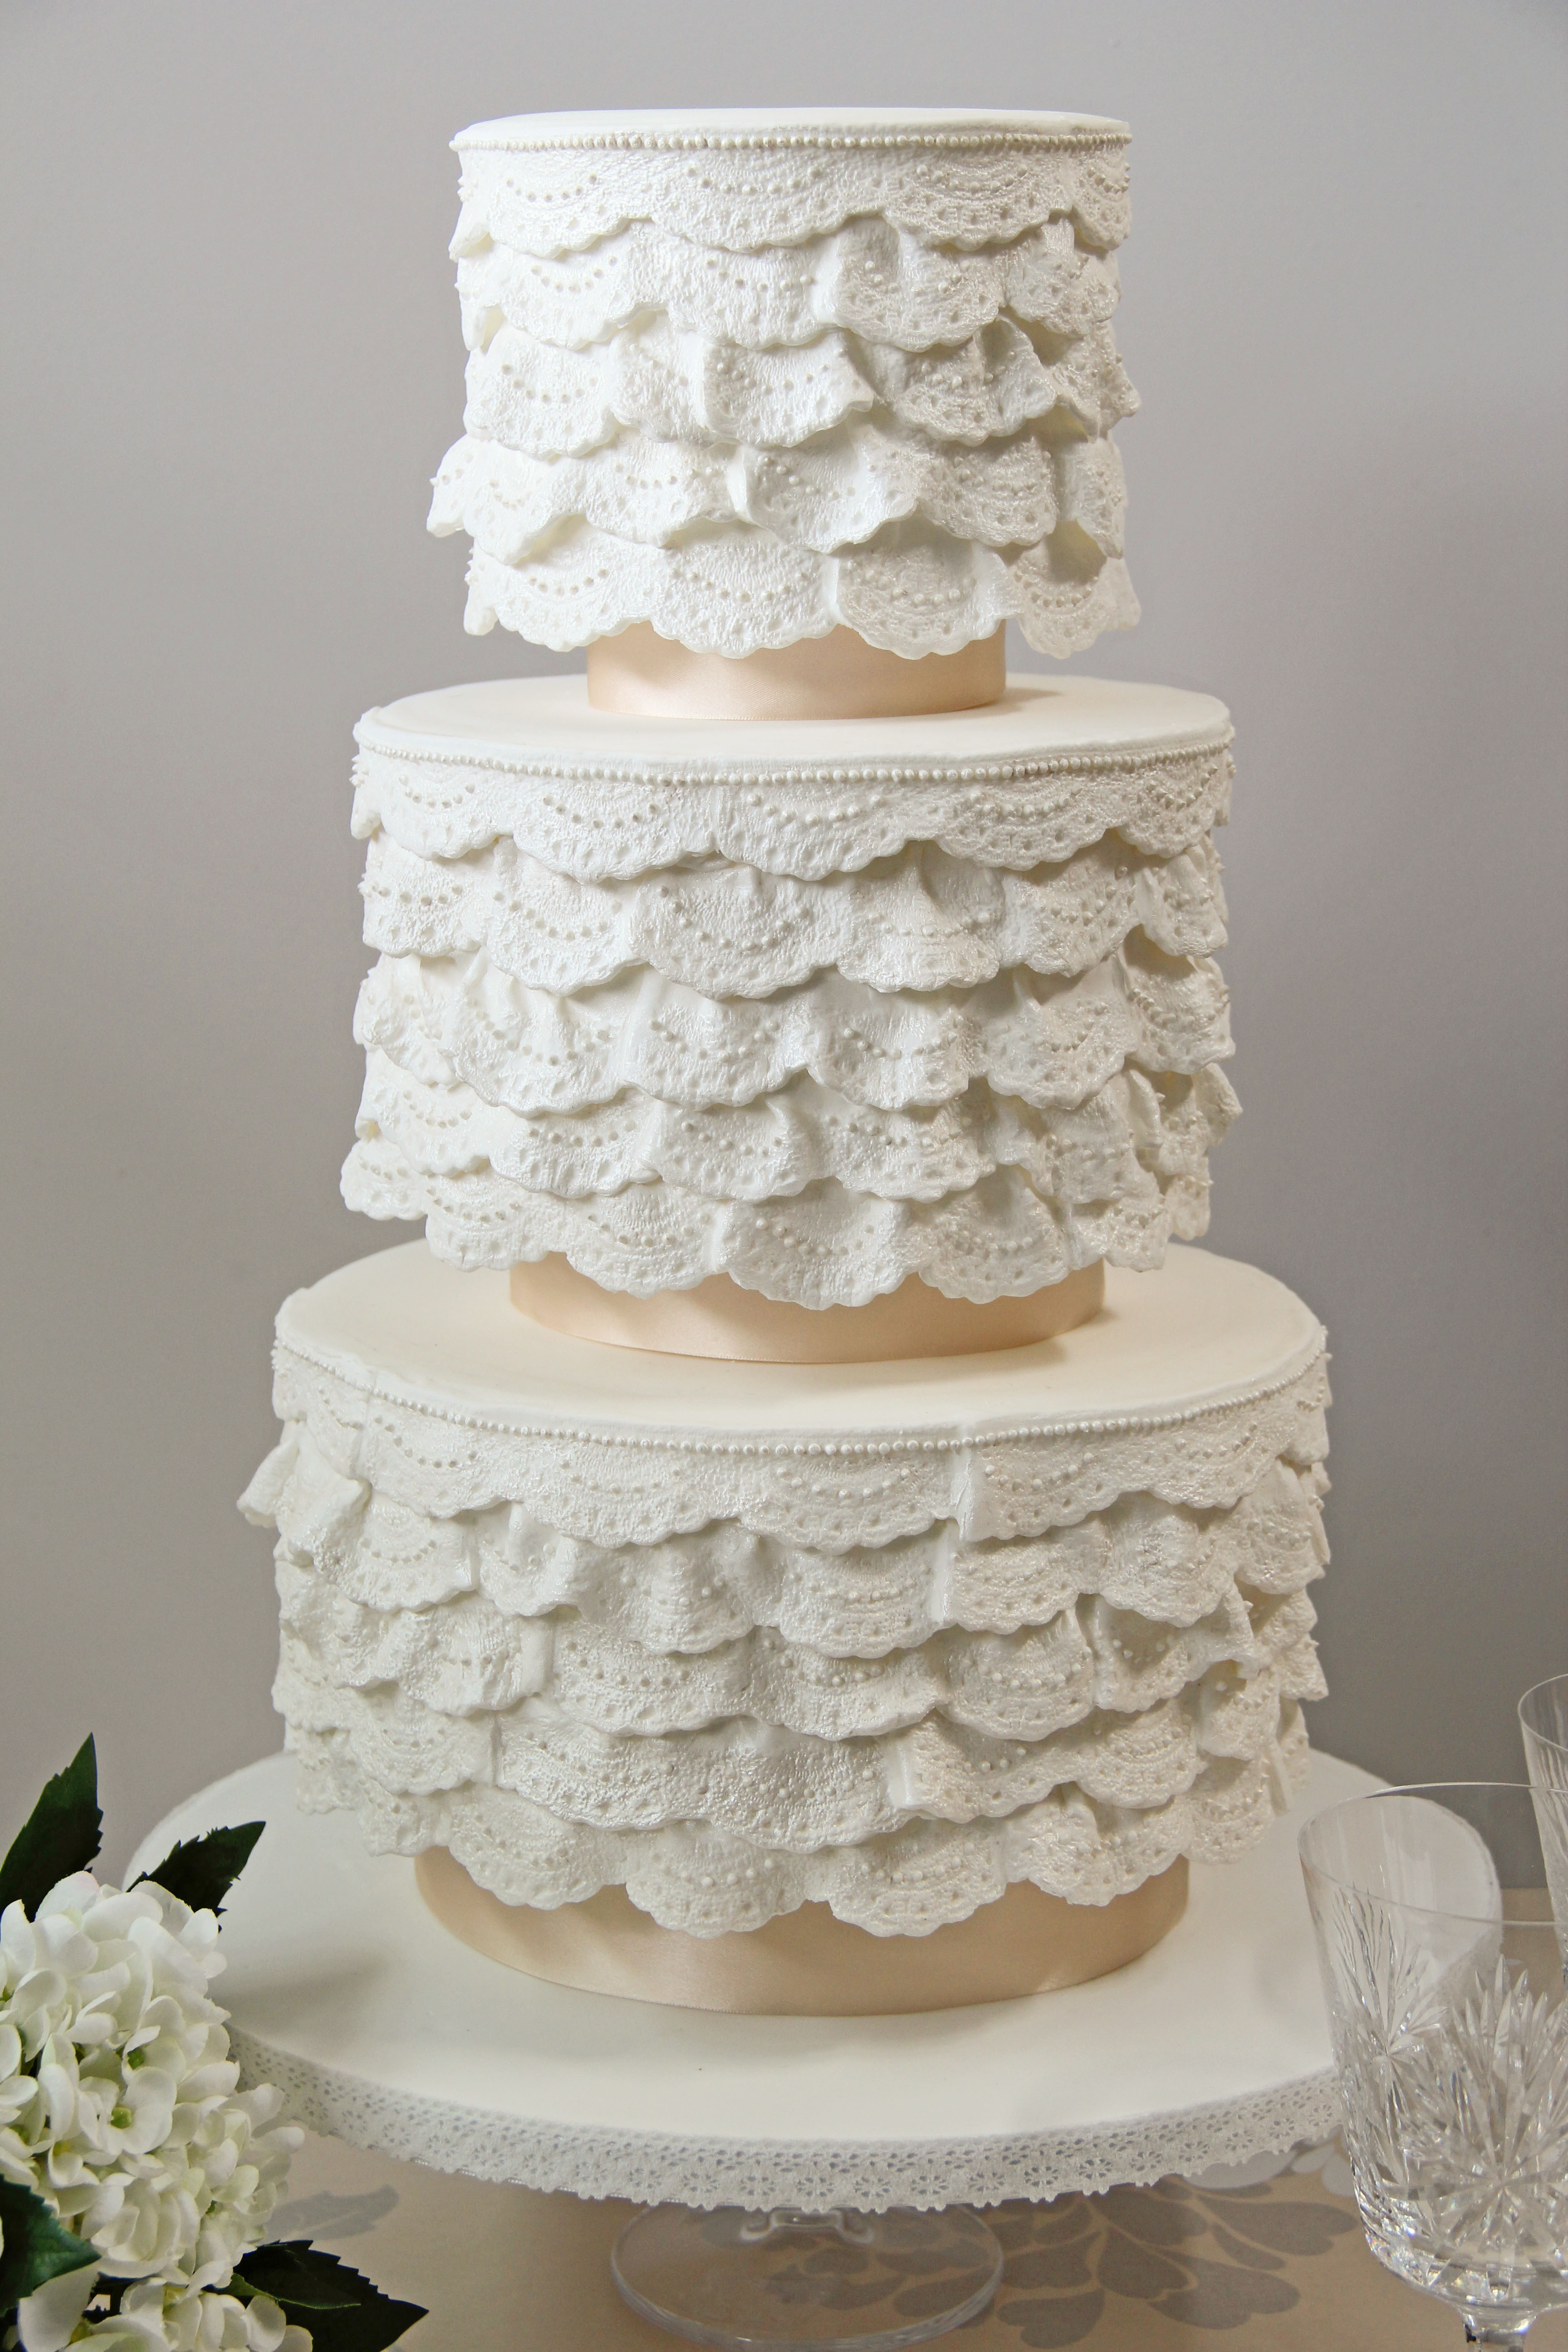 Lace Wedding Cakes  Wedding Cake Flavours & Designs with Sweetness Cake